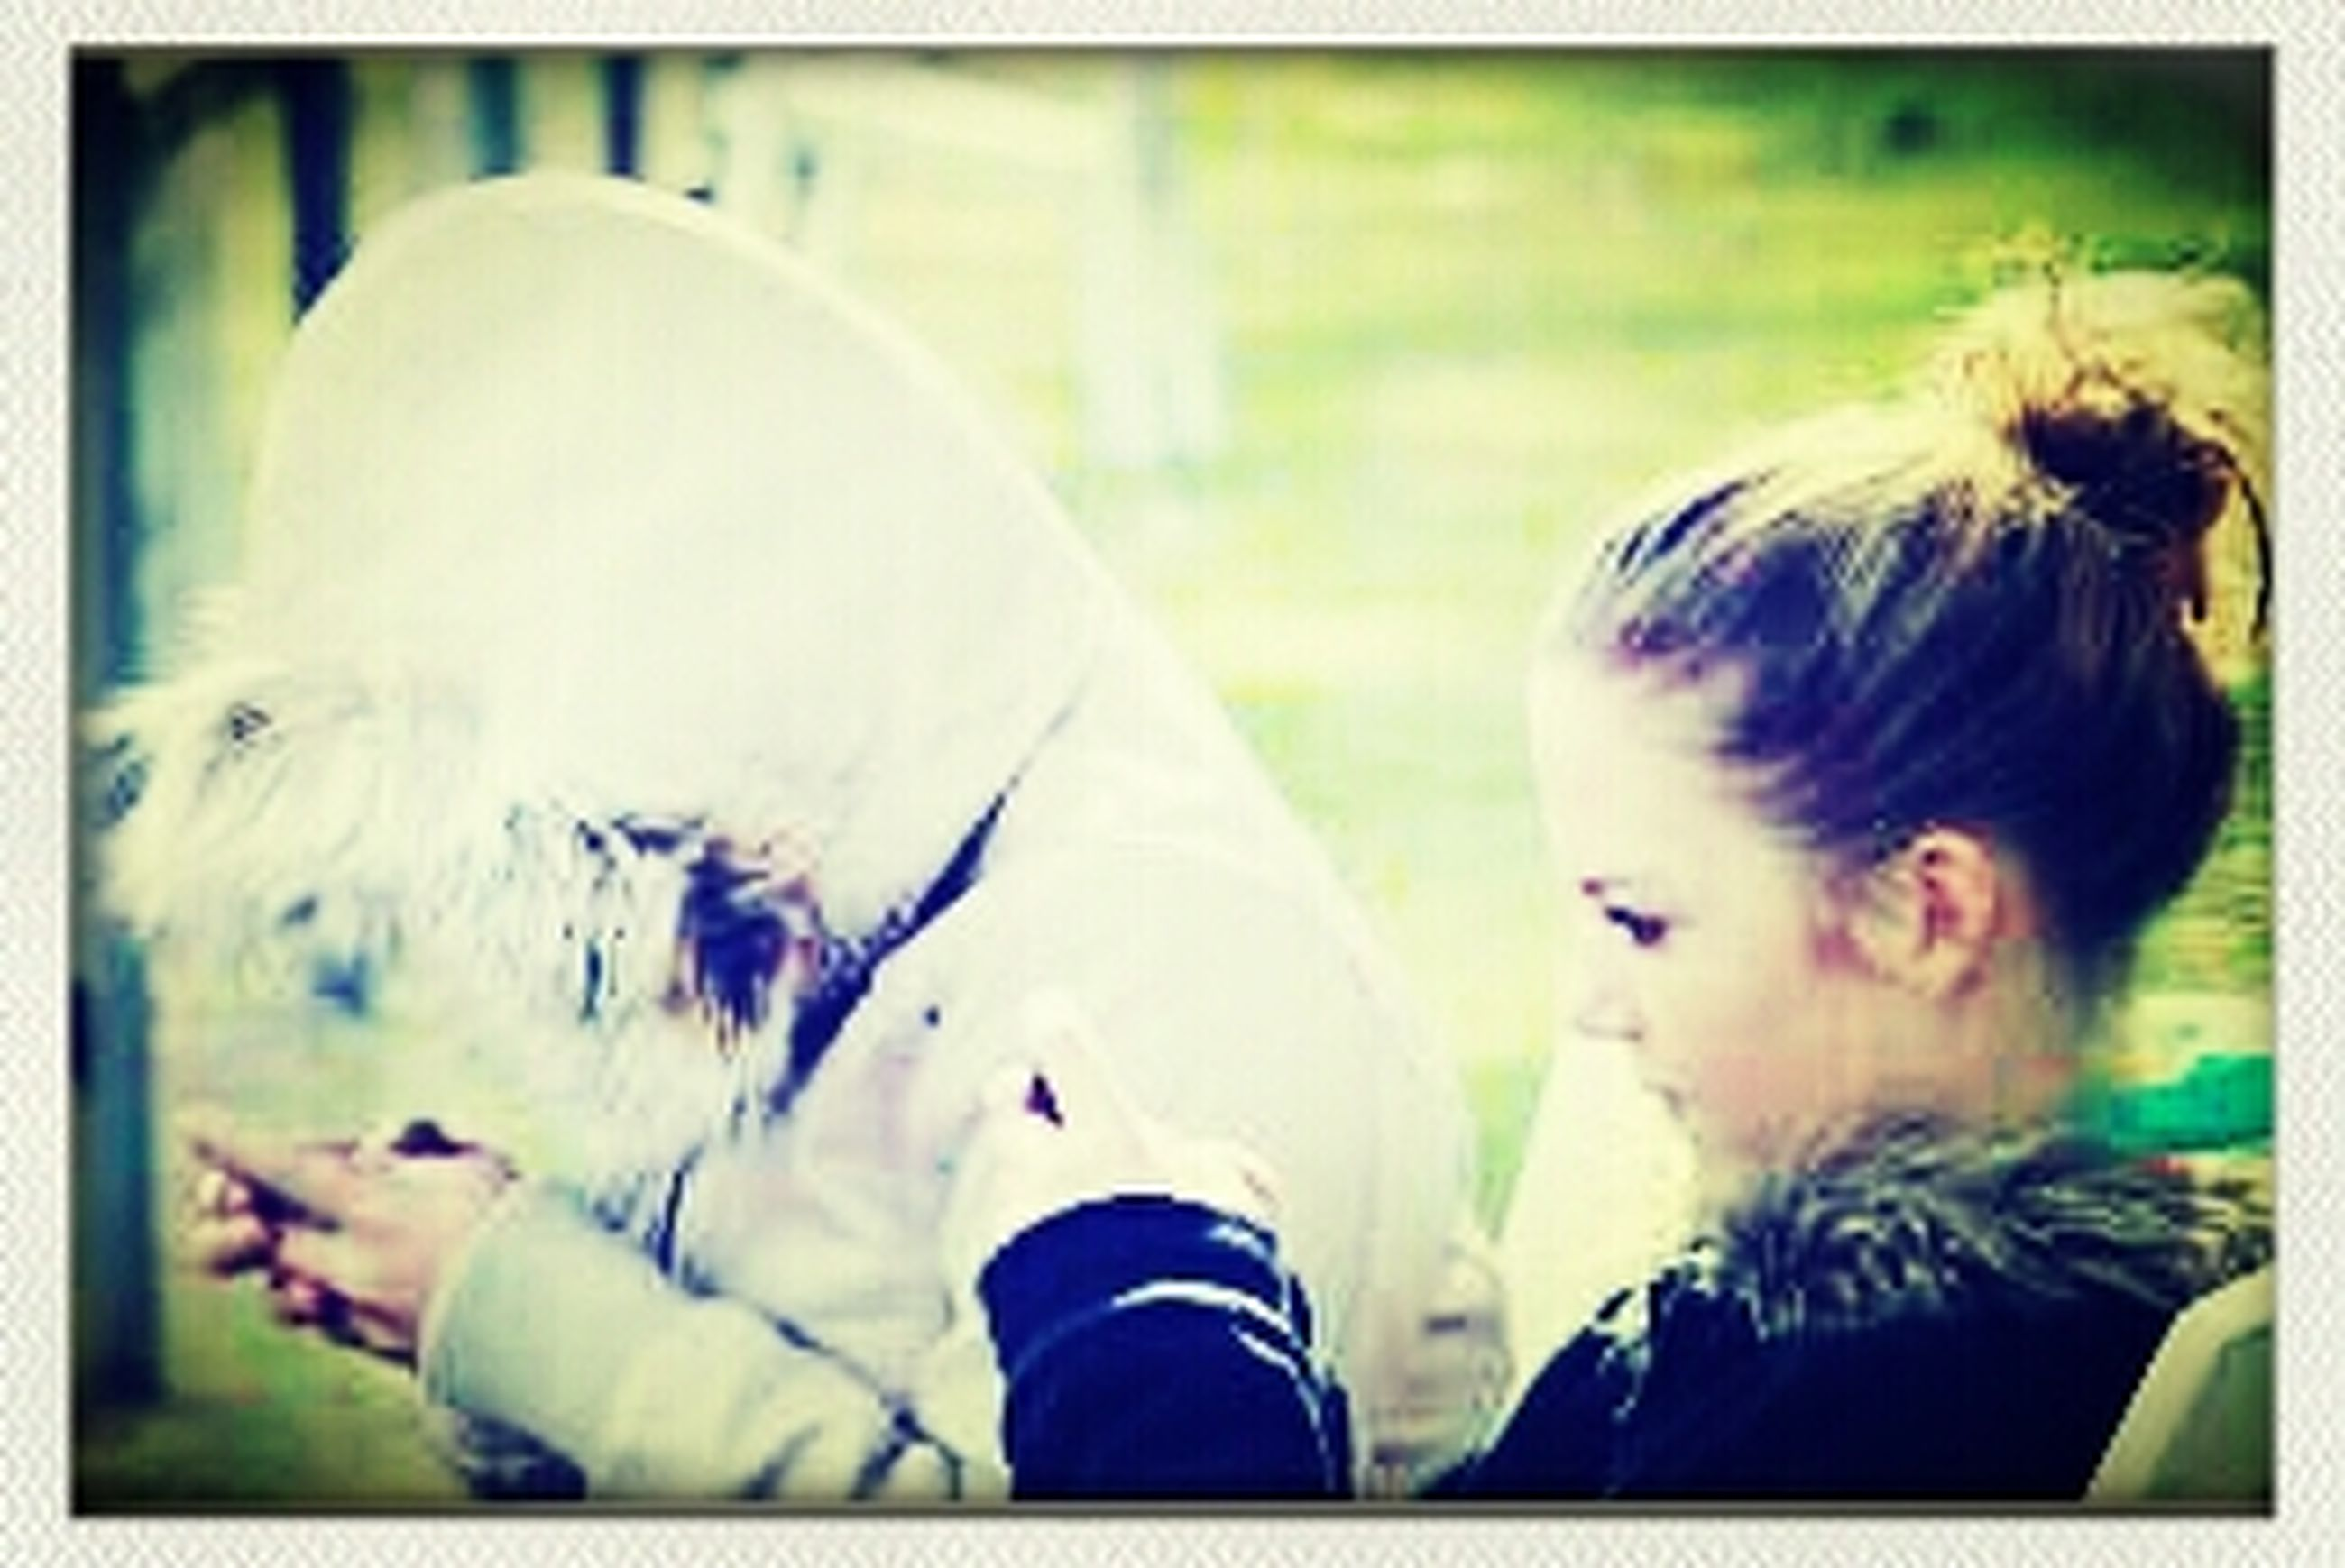 togetherness, lifestyles, leisure activity, childhood, bonding, transfer print, girls, elementary age, person, love, boys, auto post production filter, innocence, casual clothing, headshot, mother, cute